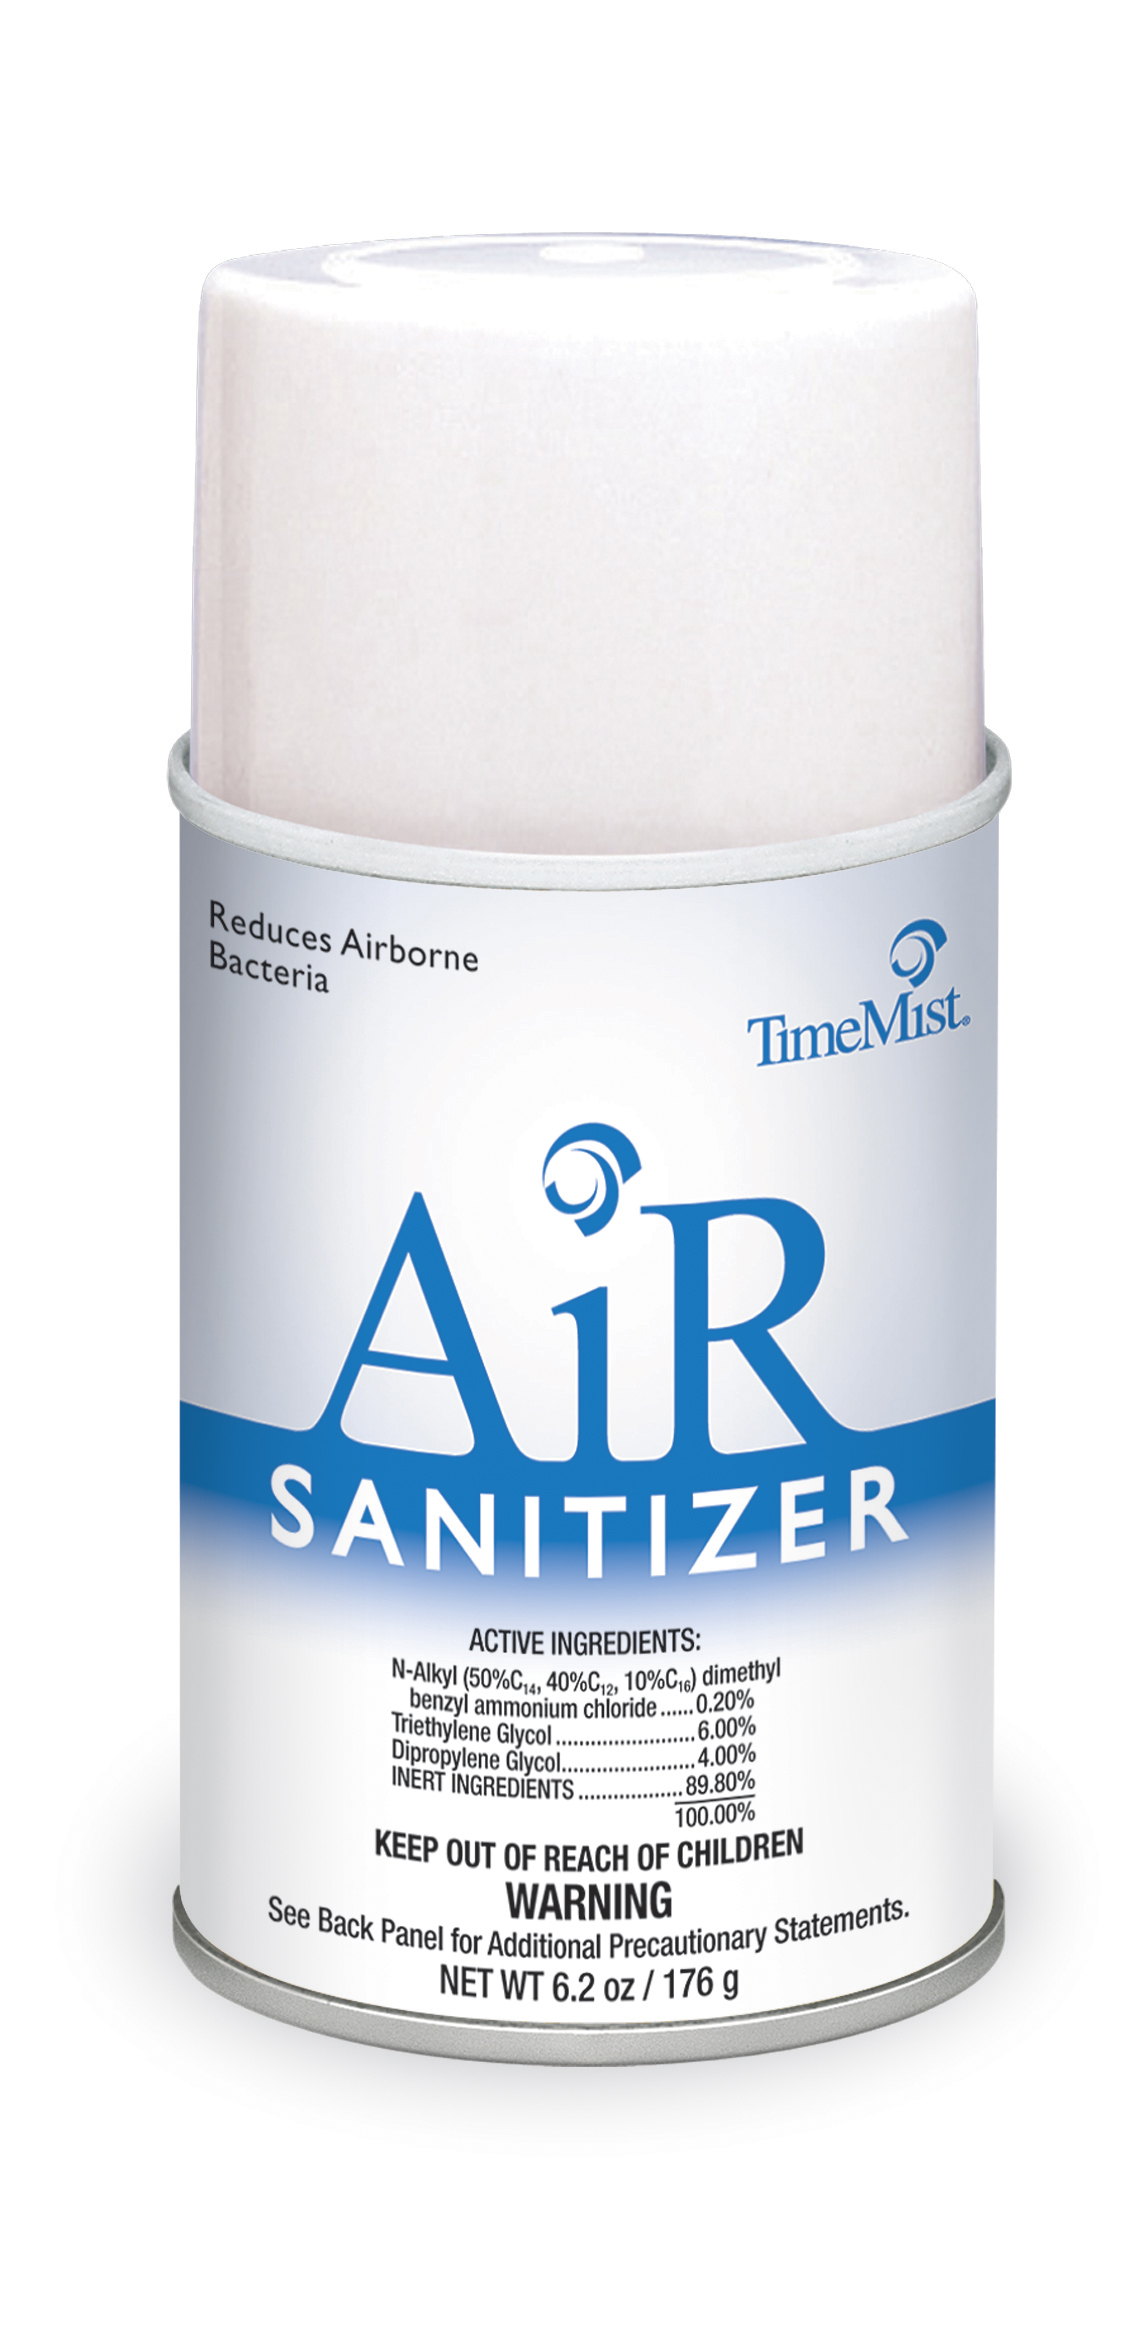 TimeMist 30 Day Air Sanitizer Anti Bacterial Refill